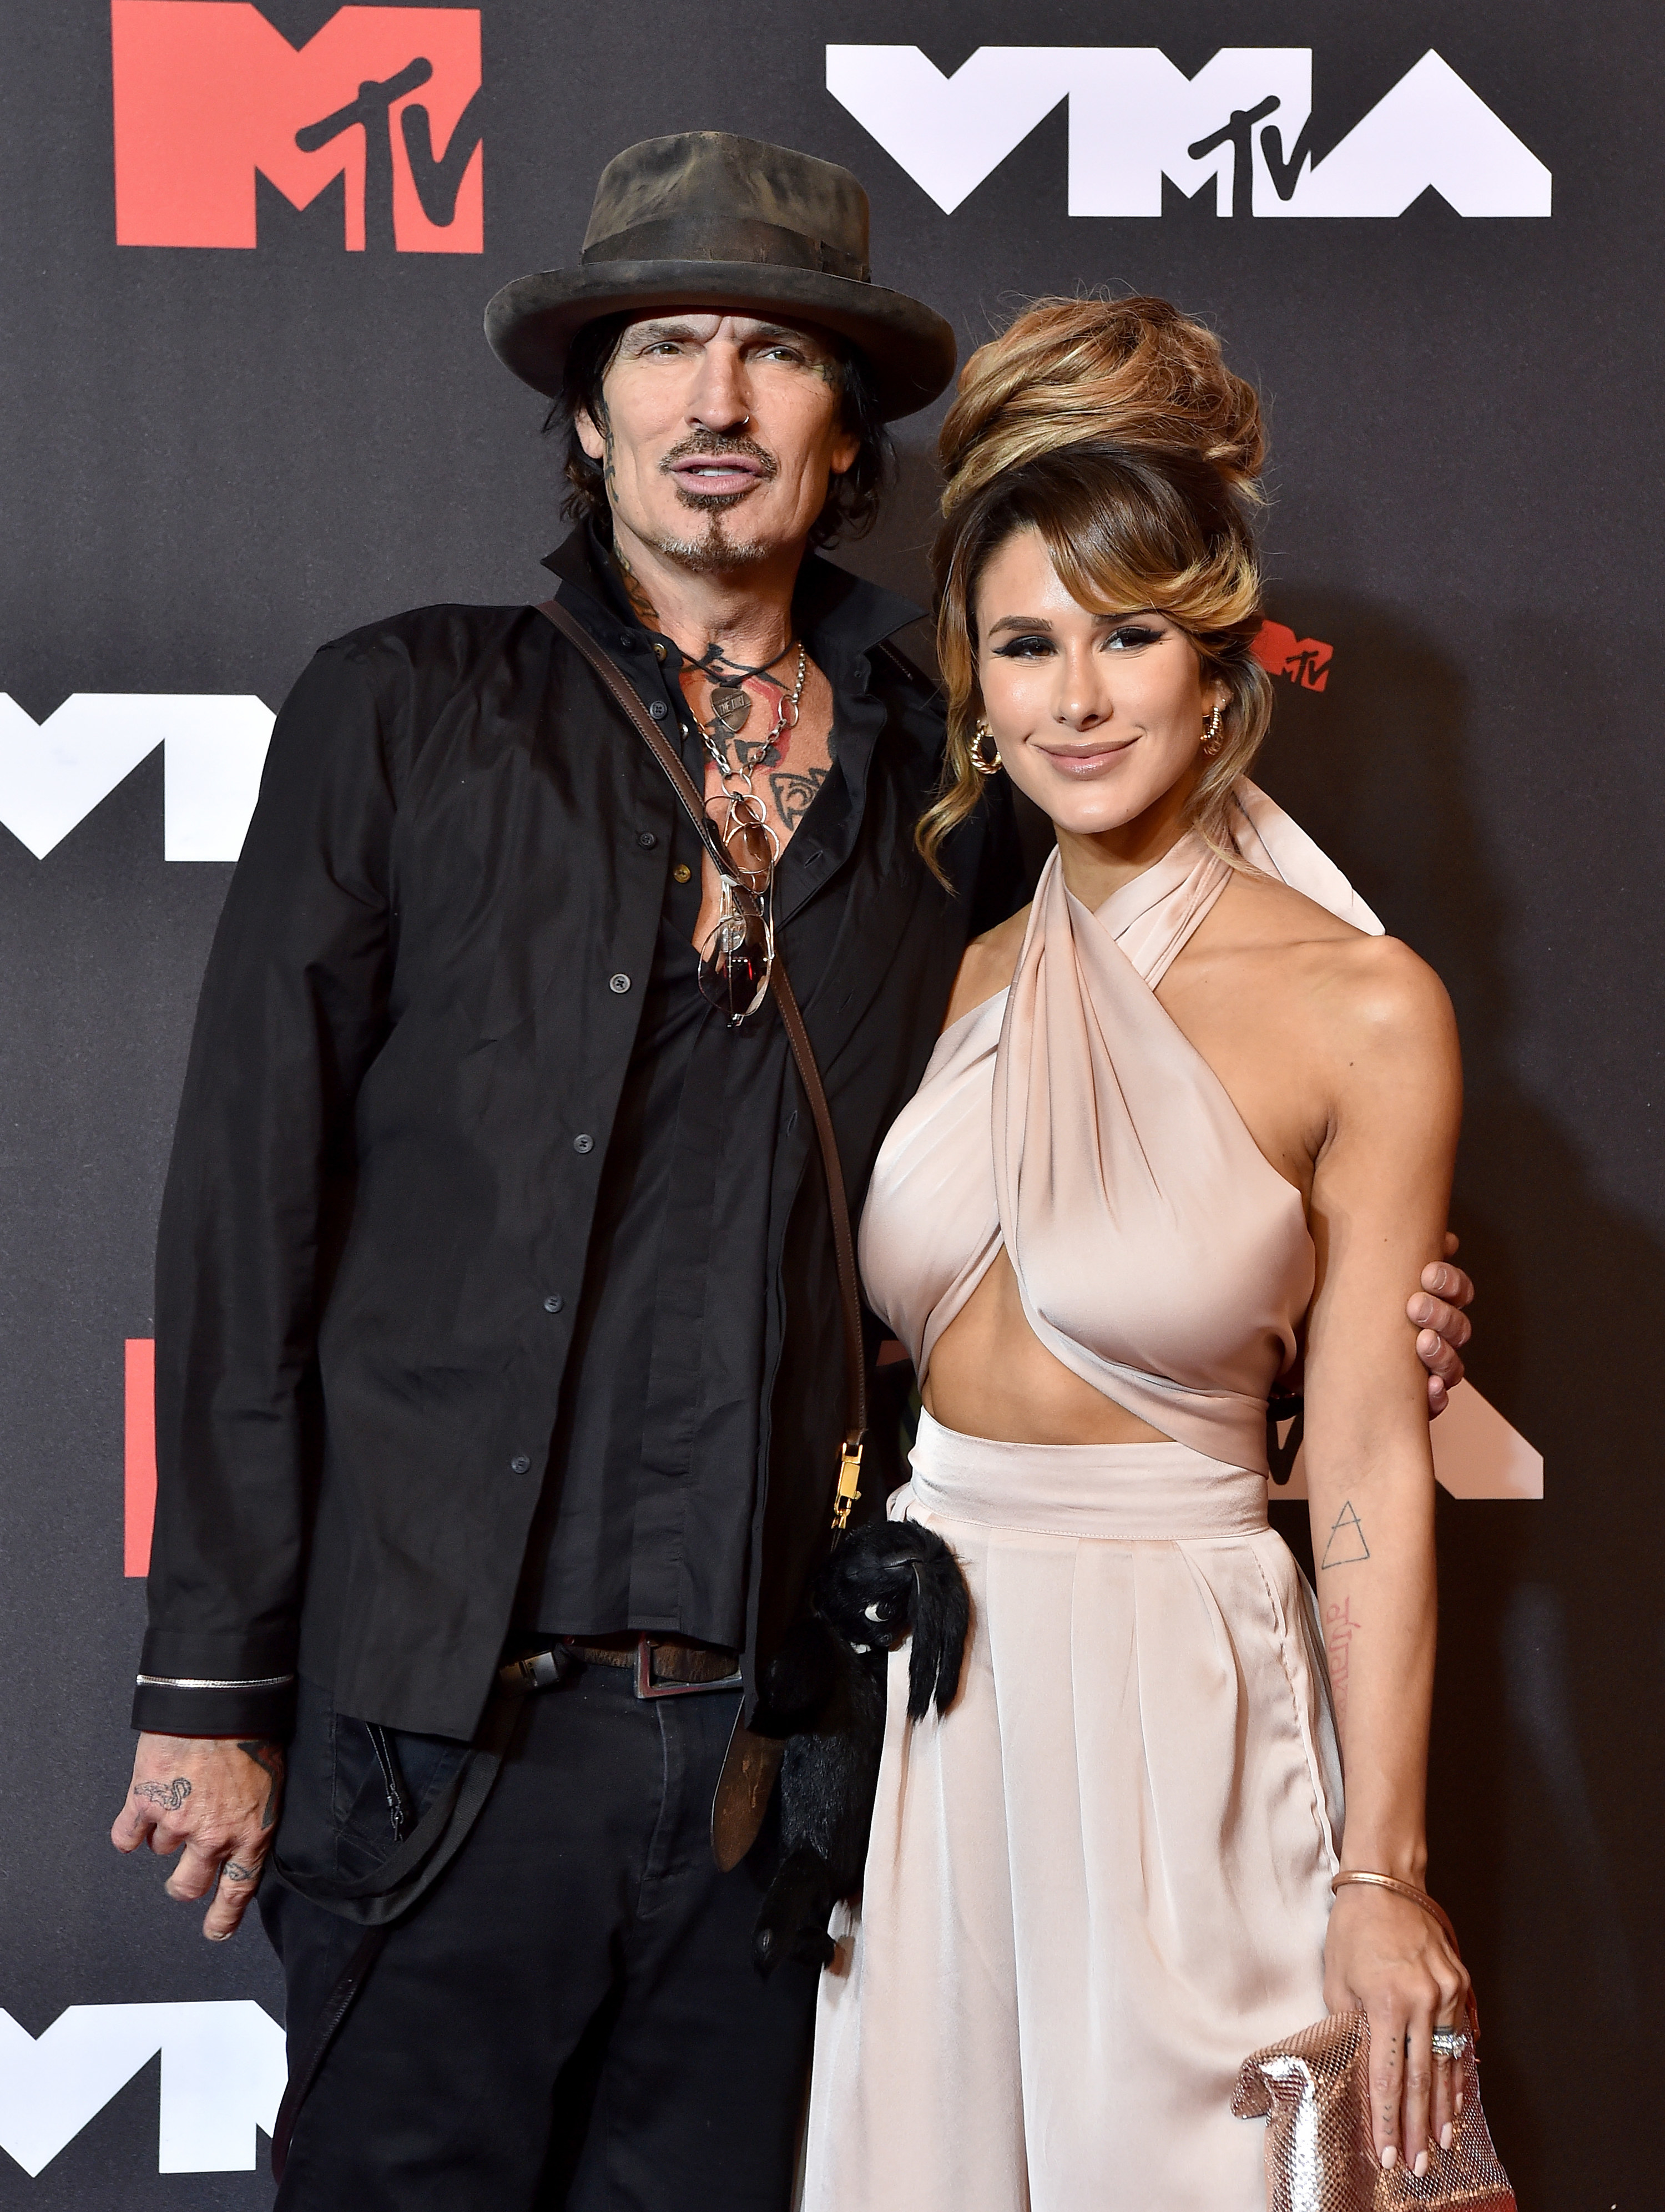 Tommy and Brittany on the red carpet